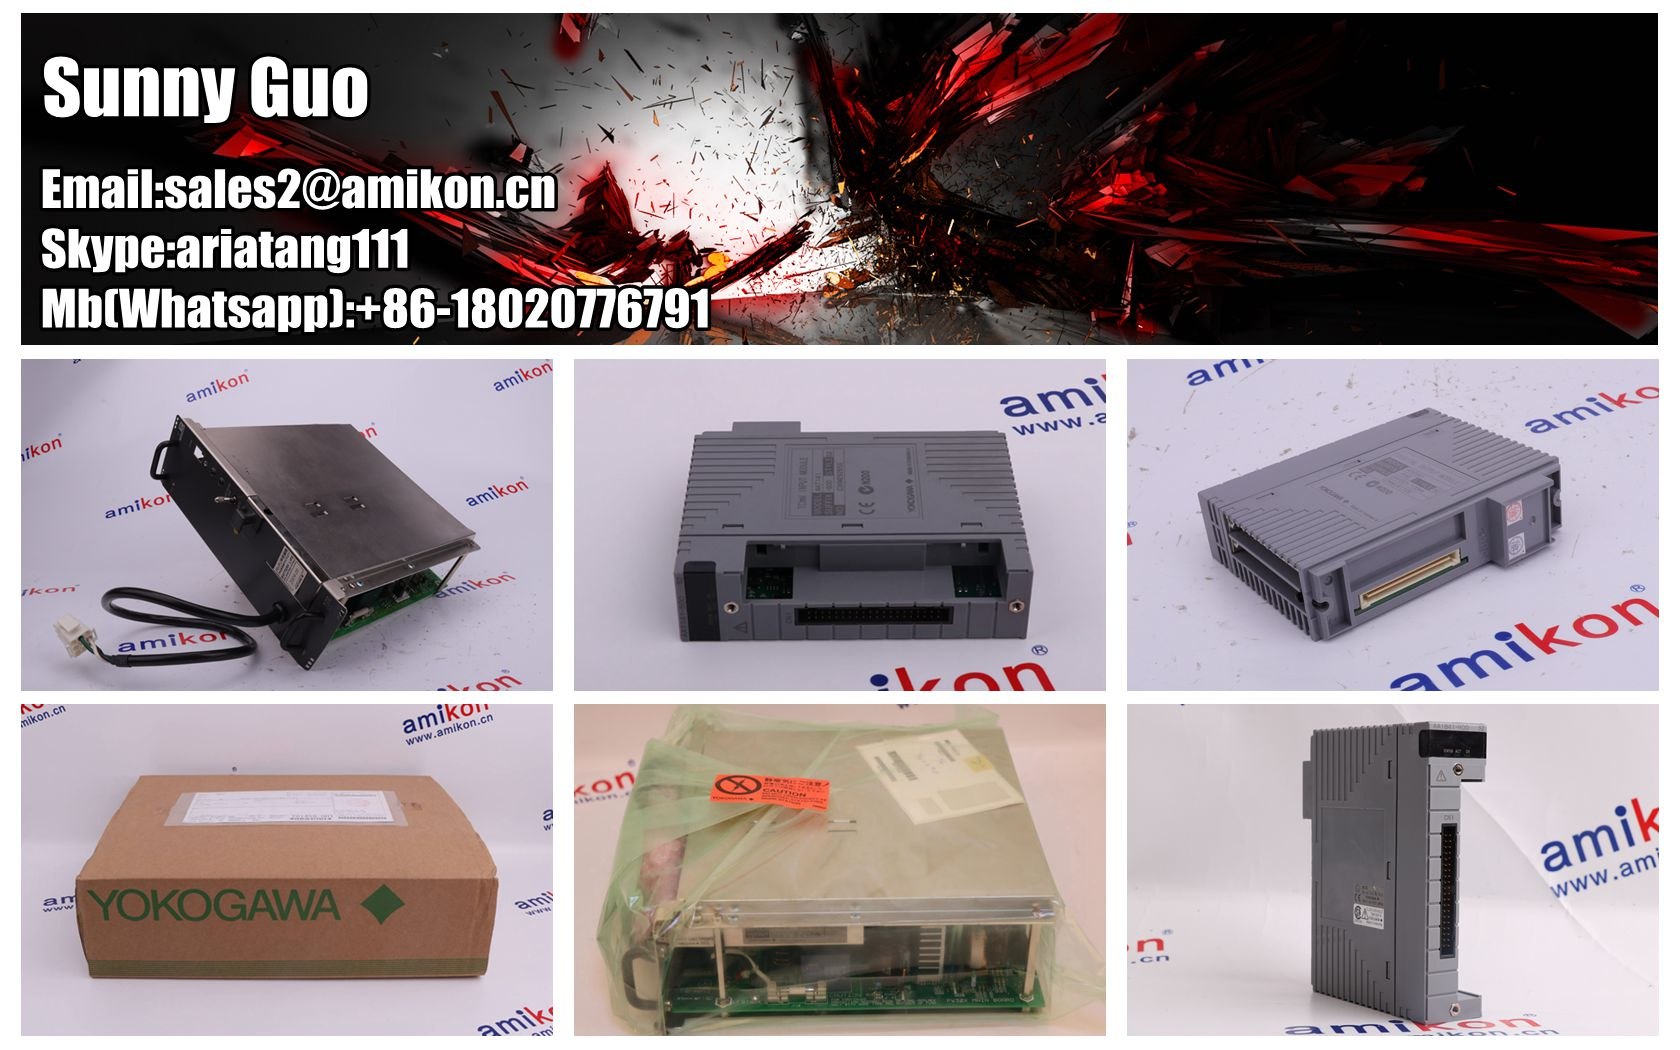 ABB 3BHE024577R0101 | sales2@amikon.cn | ship in 24h